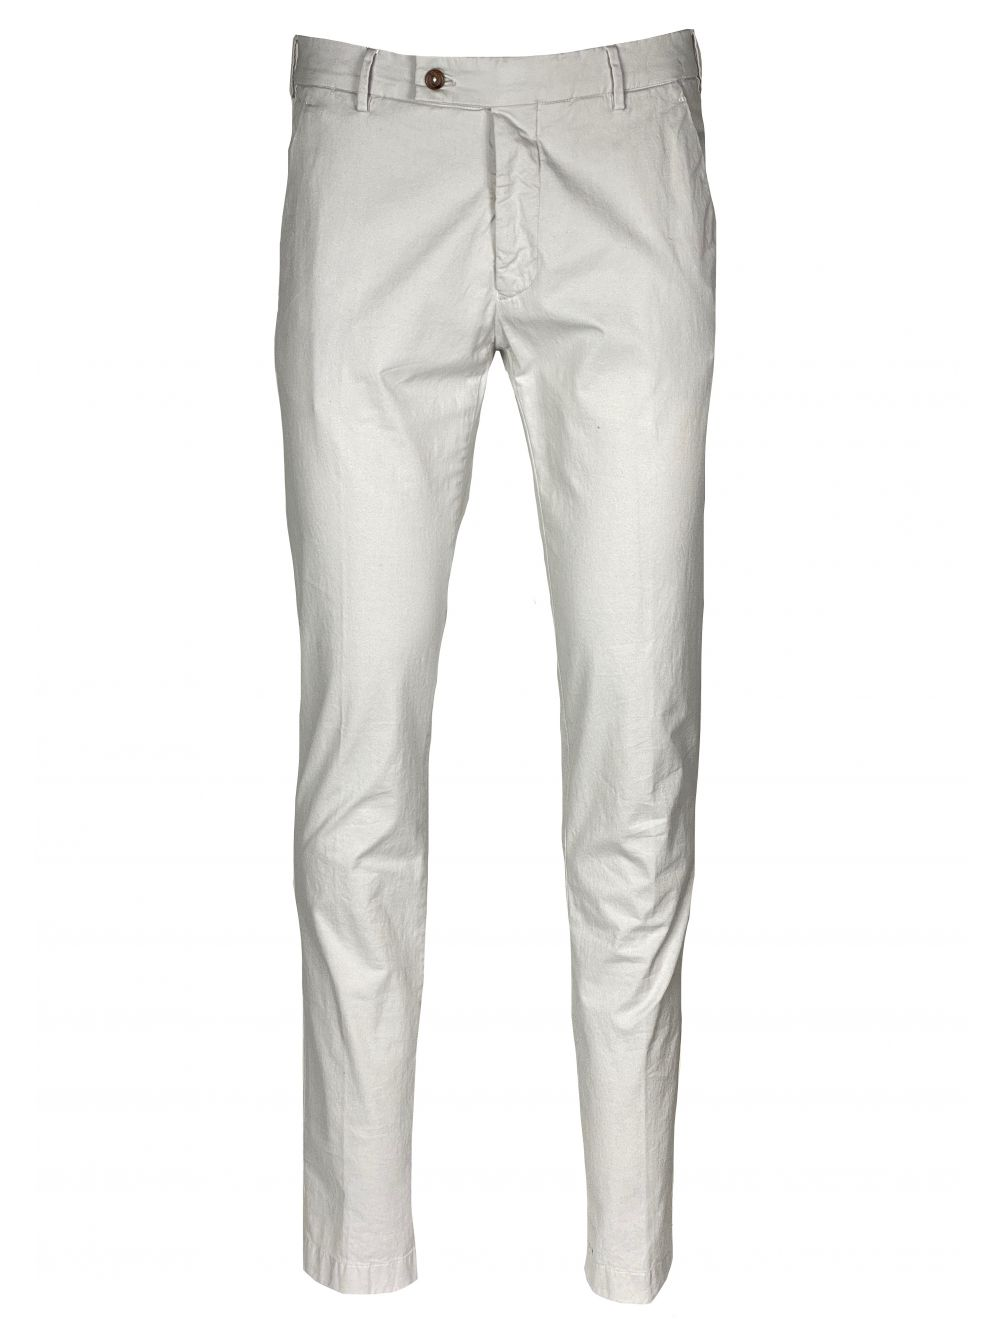 Boston Trader Slimfit Stretch Chino -  River Silt